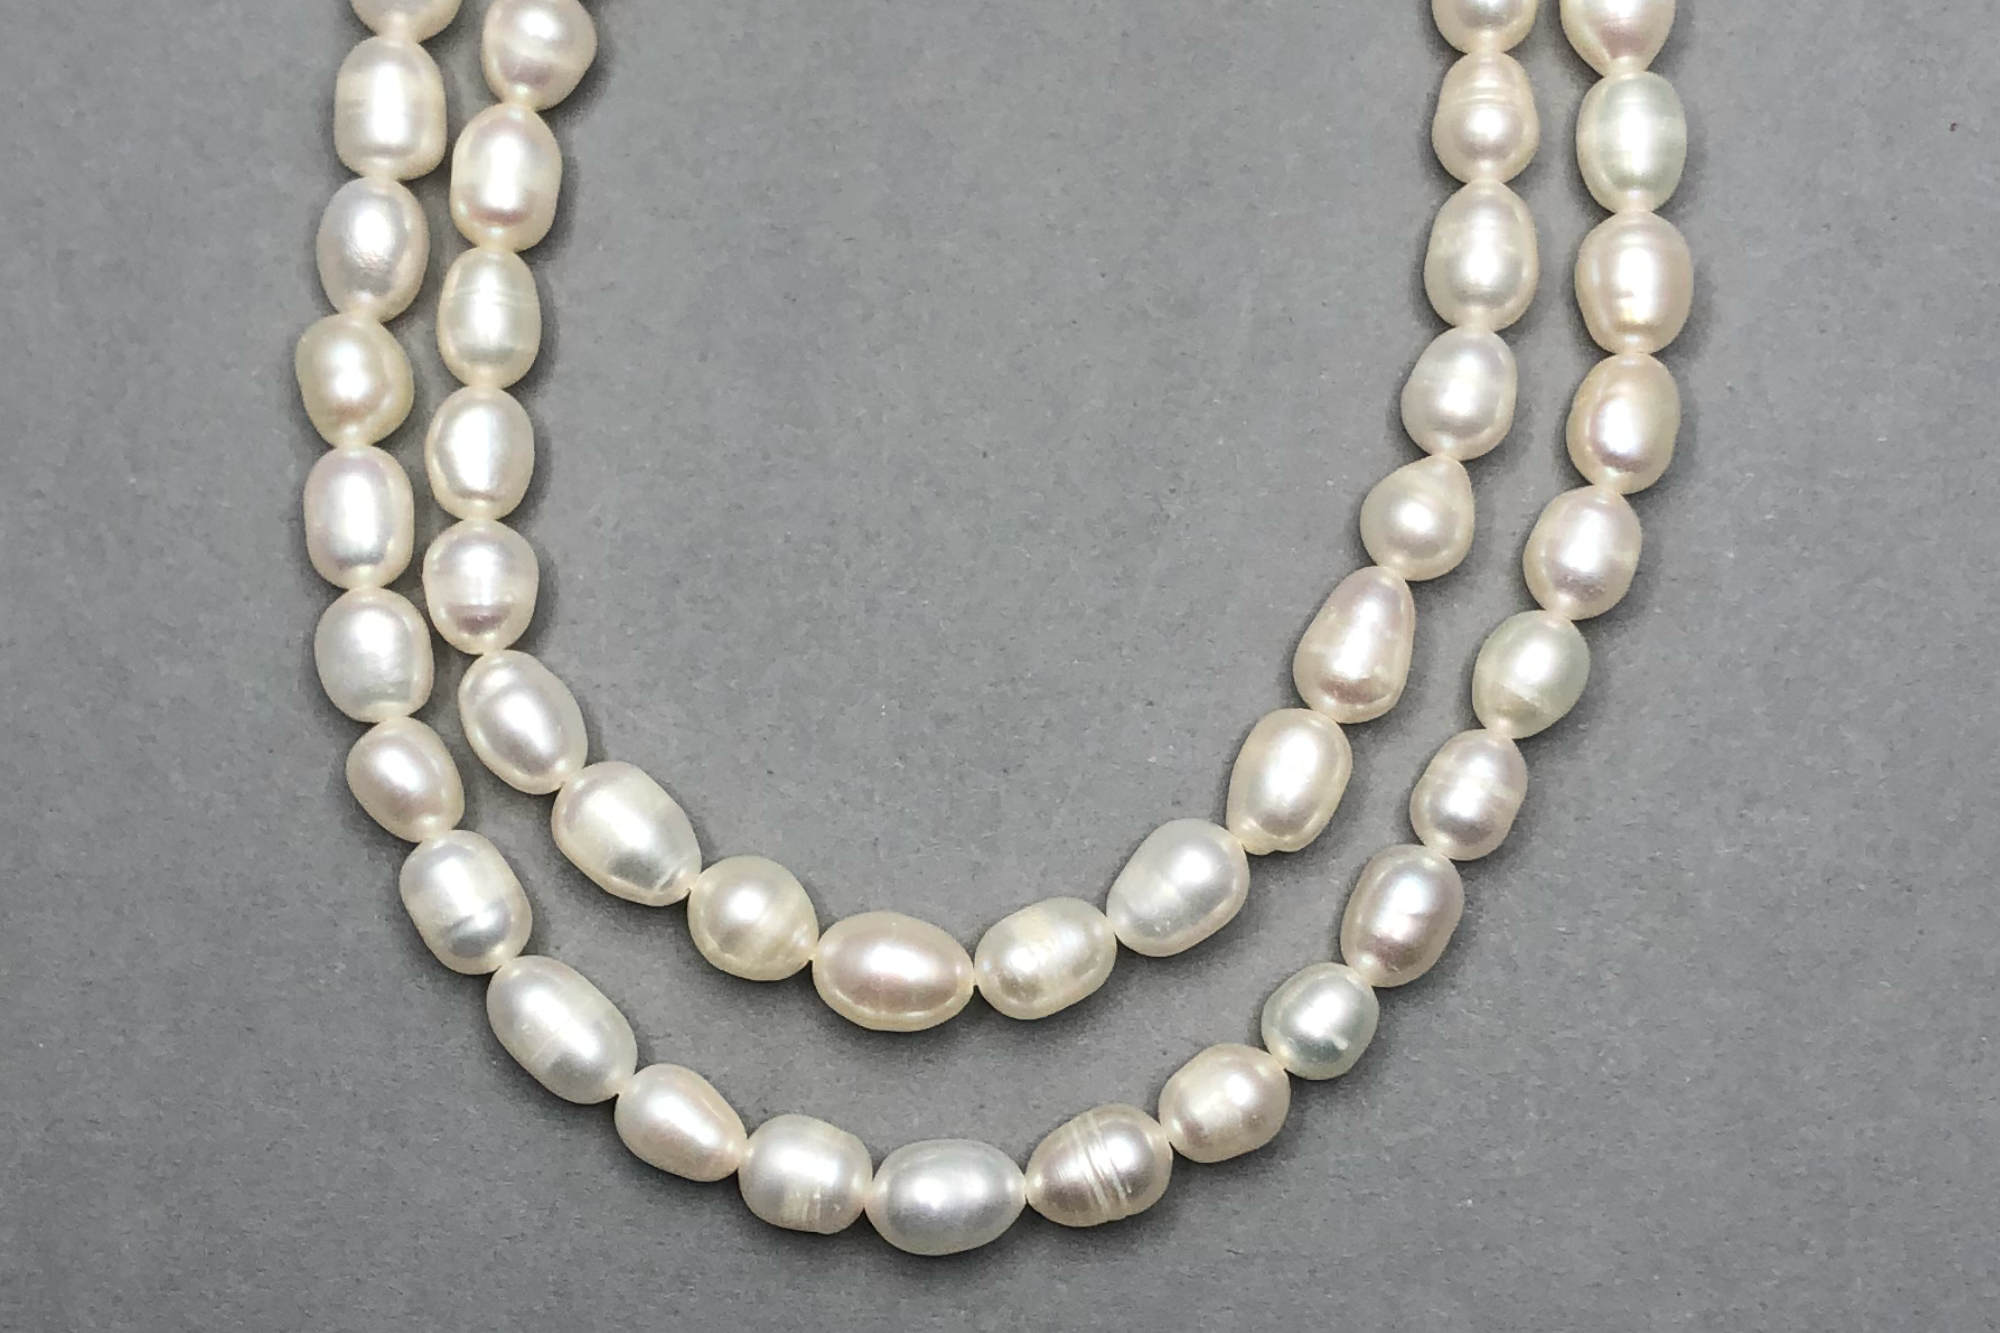 Natural Ivory Fresh Water Pearls, approx 37cm Strand, Slight Pear Shape